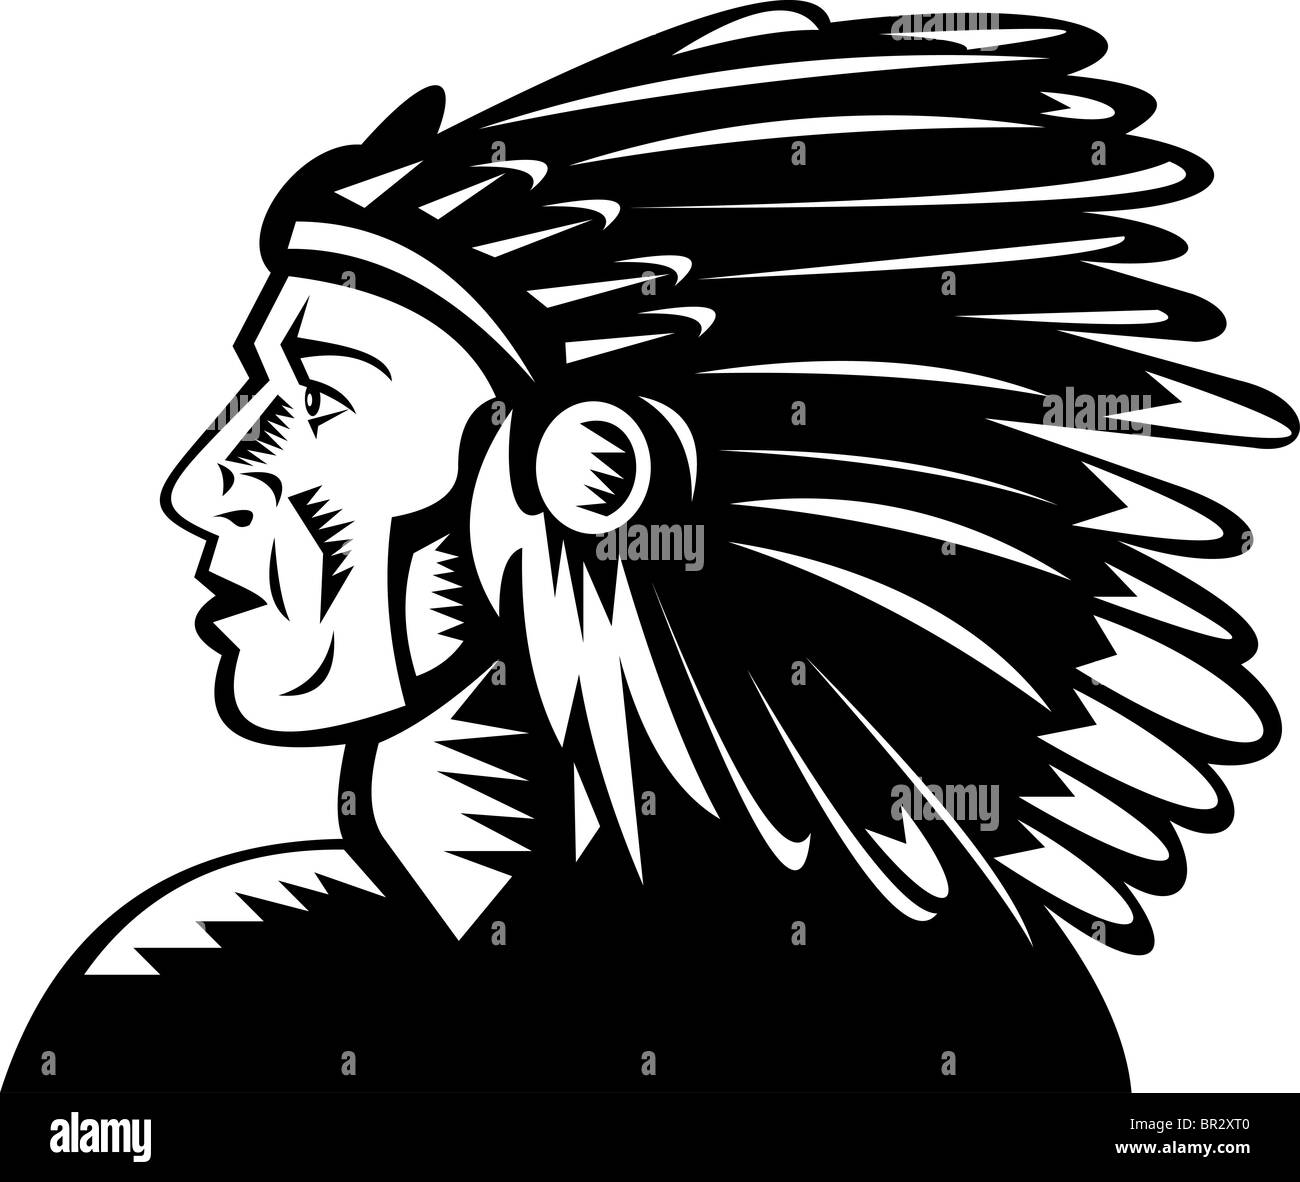 native american indian chief with headdress woodcut style - Stock Image